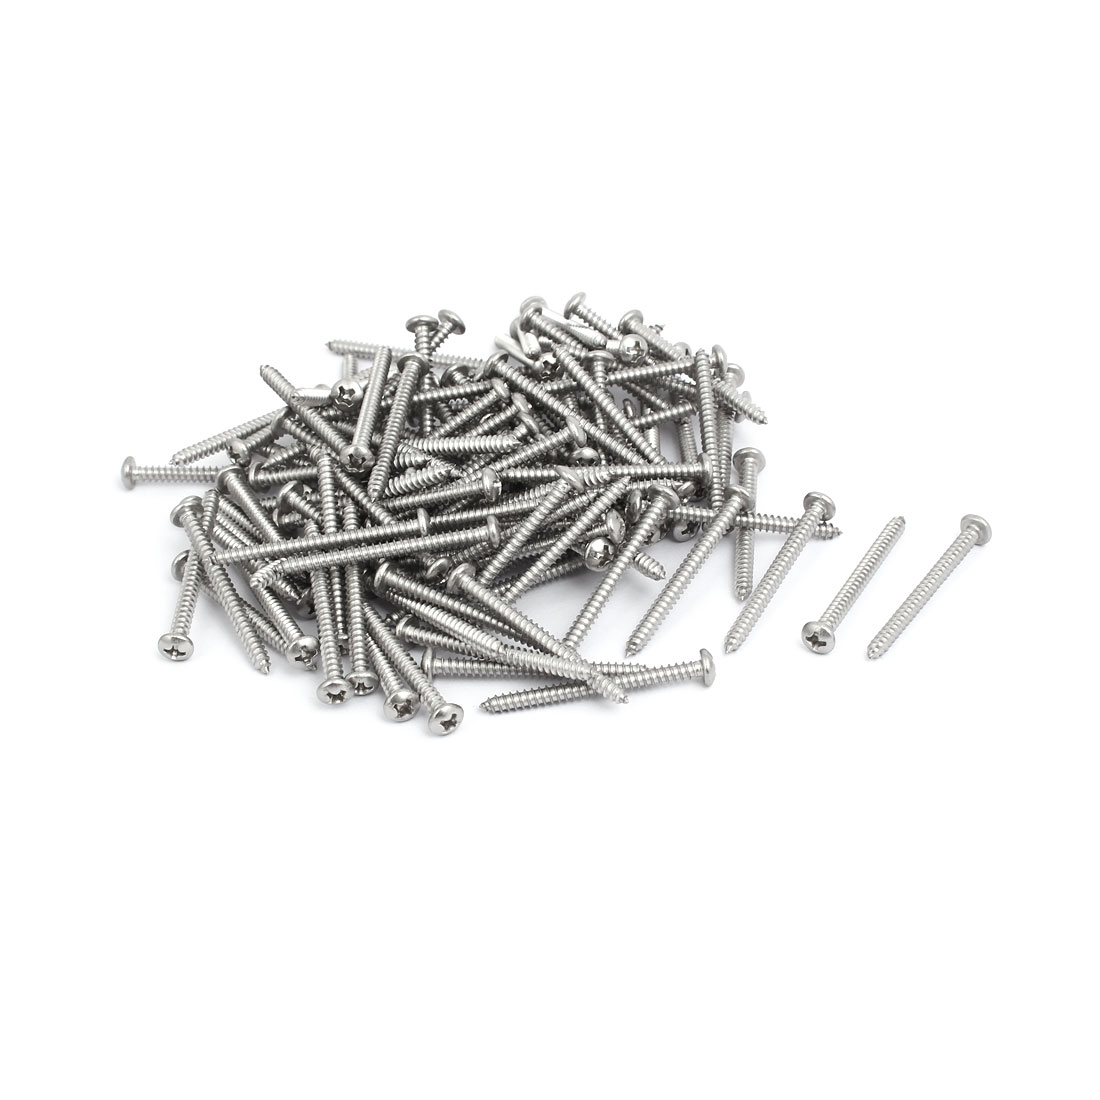 M3.5x40mm 304 Stainless Steel Phillips Drive Pan Head Self Tapping Screws 150pcs